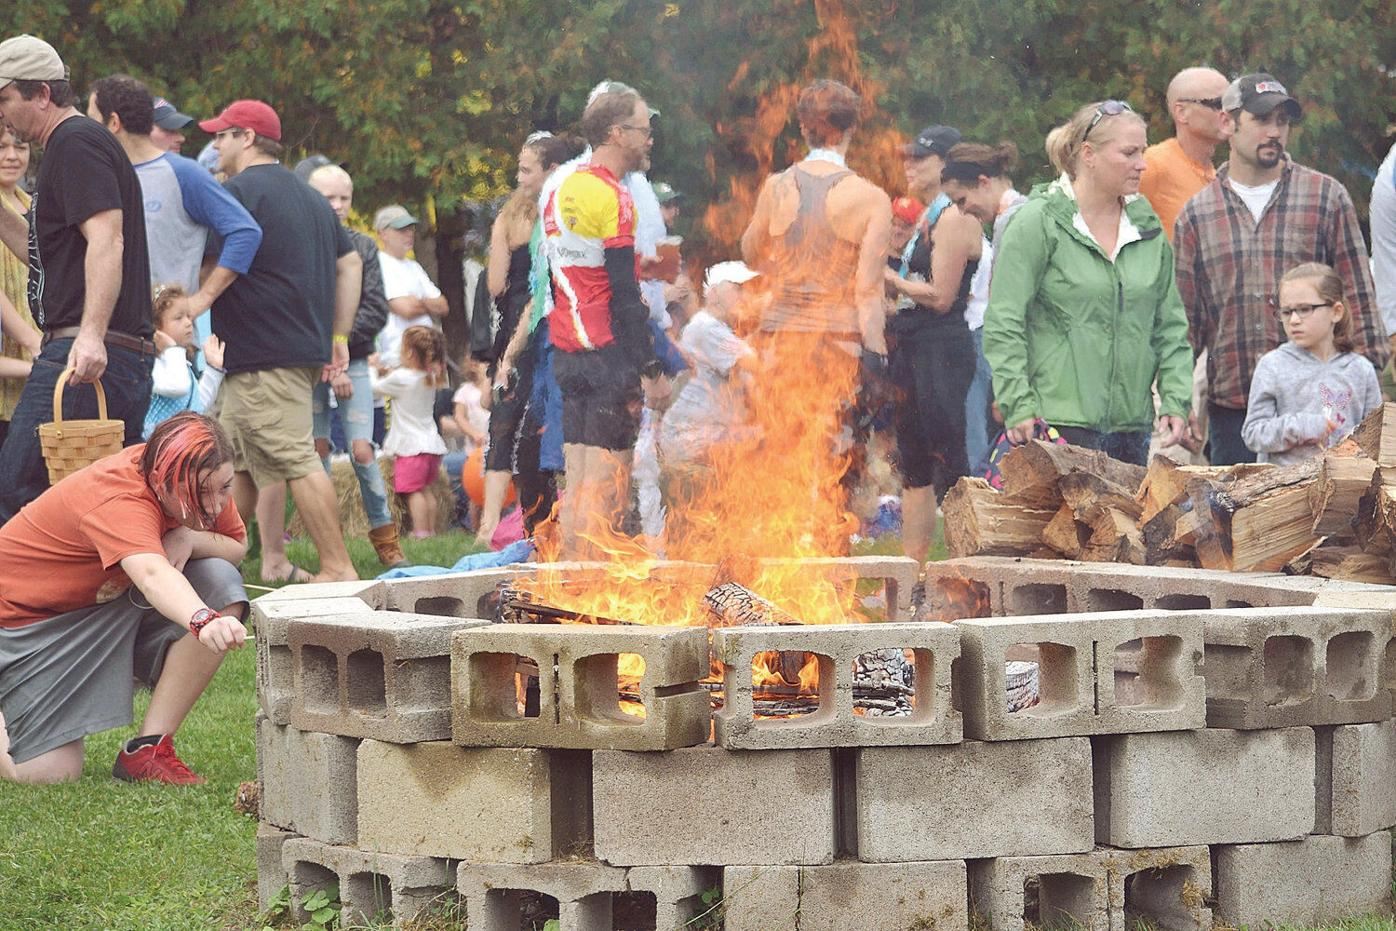 Things are looking up for fall: It's time for the Greylock Ramble